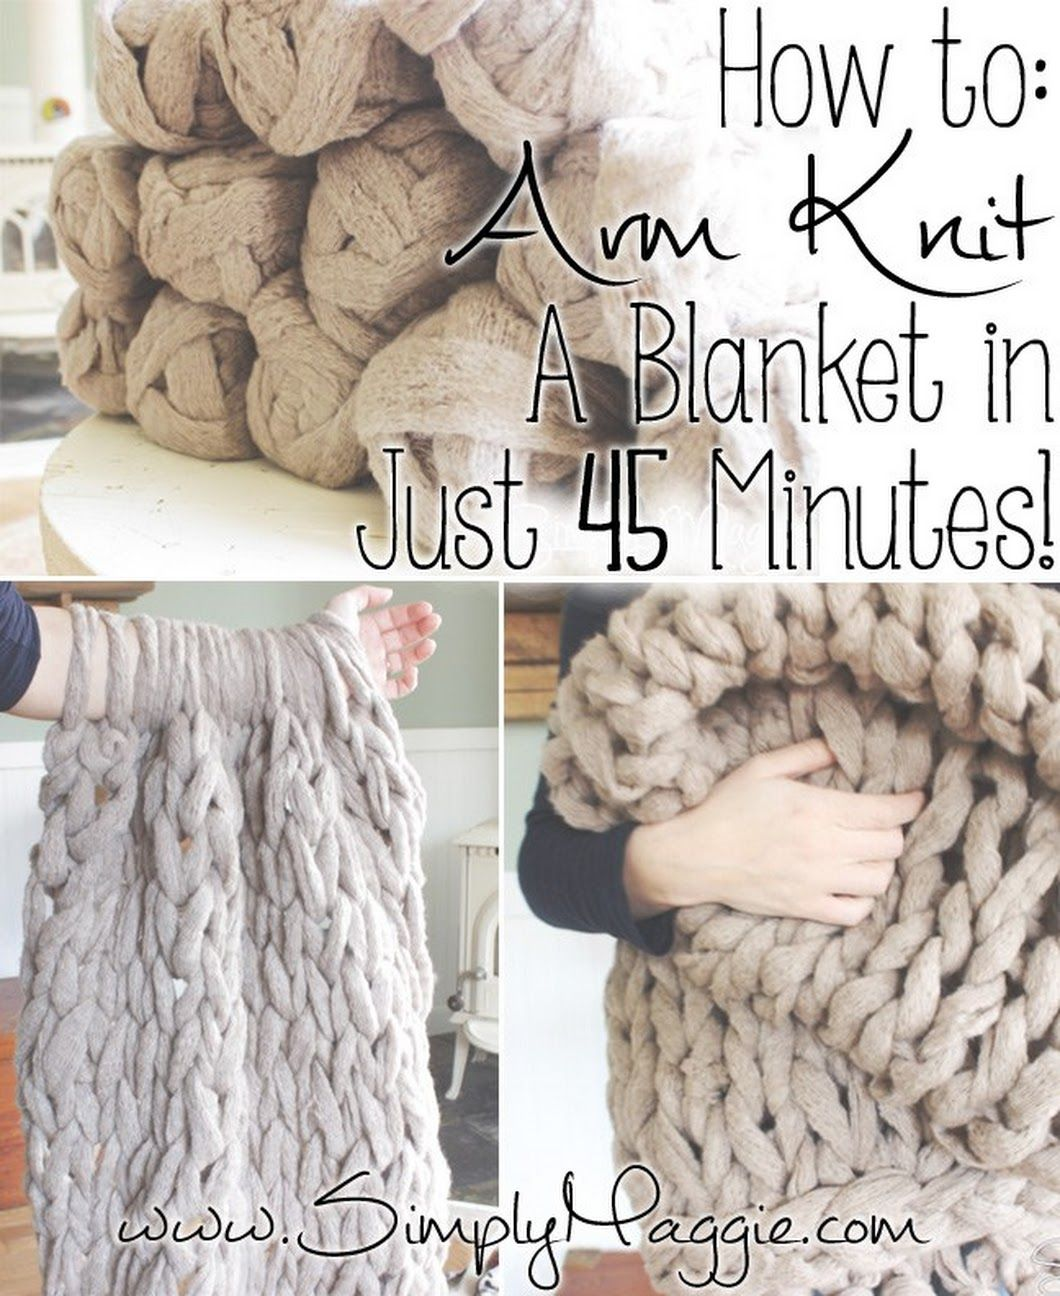 Splendid Chunky Knit DIYs with patterns Get the tutorial HERE http://resourcefulgenie.com/2016/04/09/16-insanely-gorgeous-chunky-knit-diys/15/ - Criss Gill - Google+